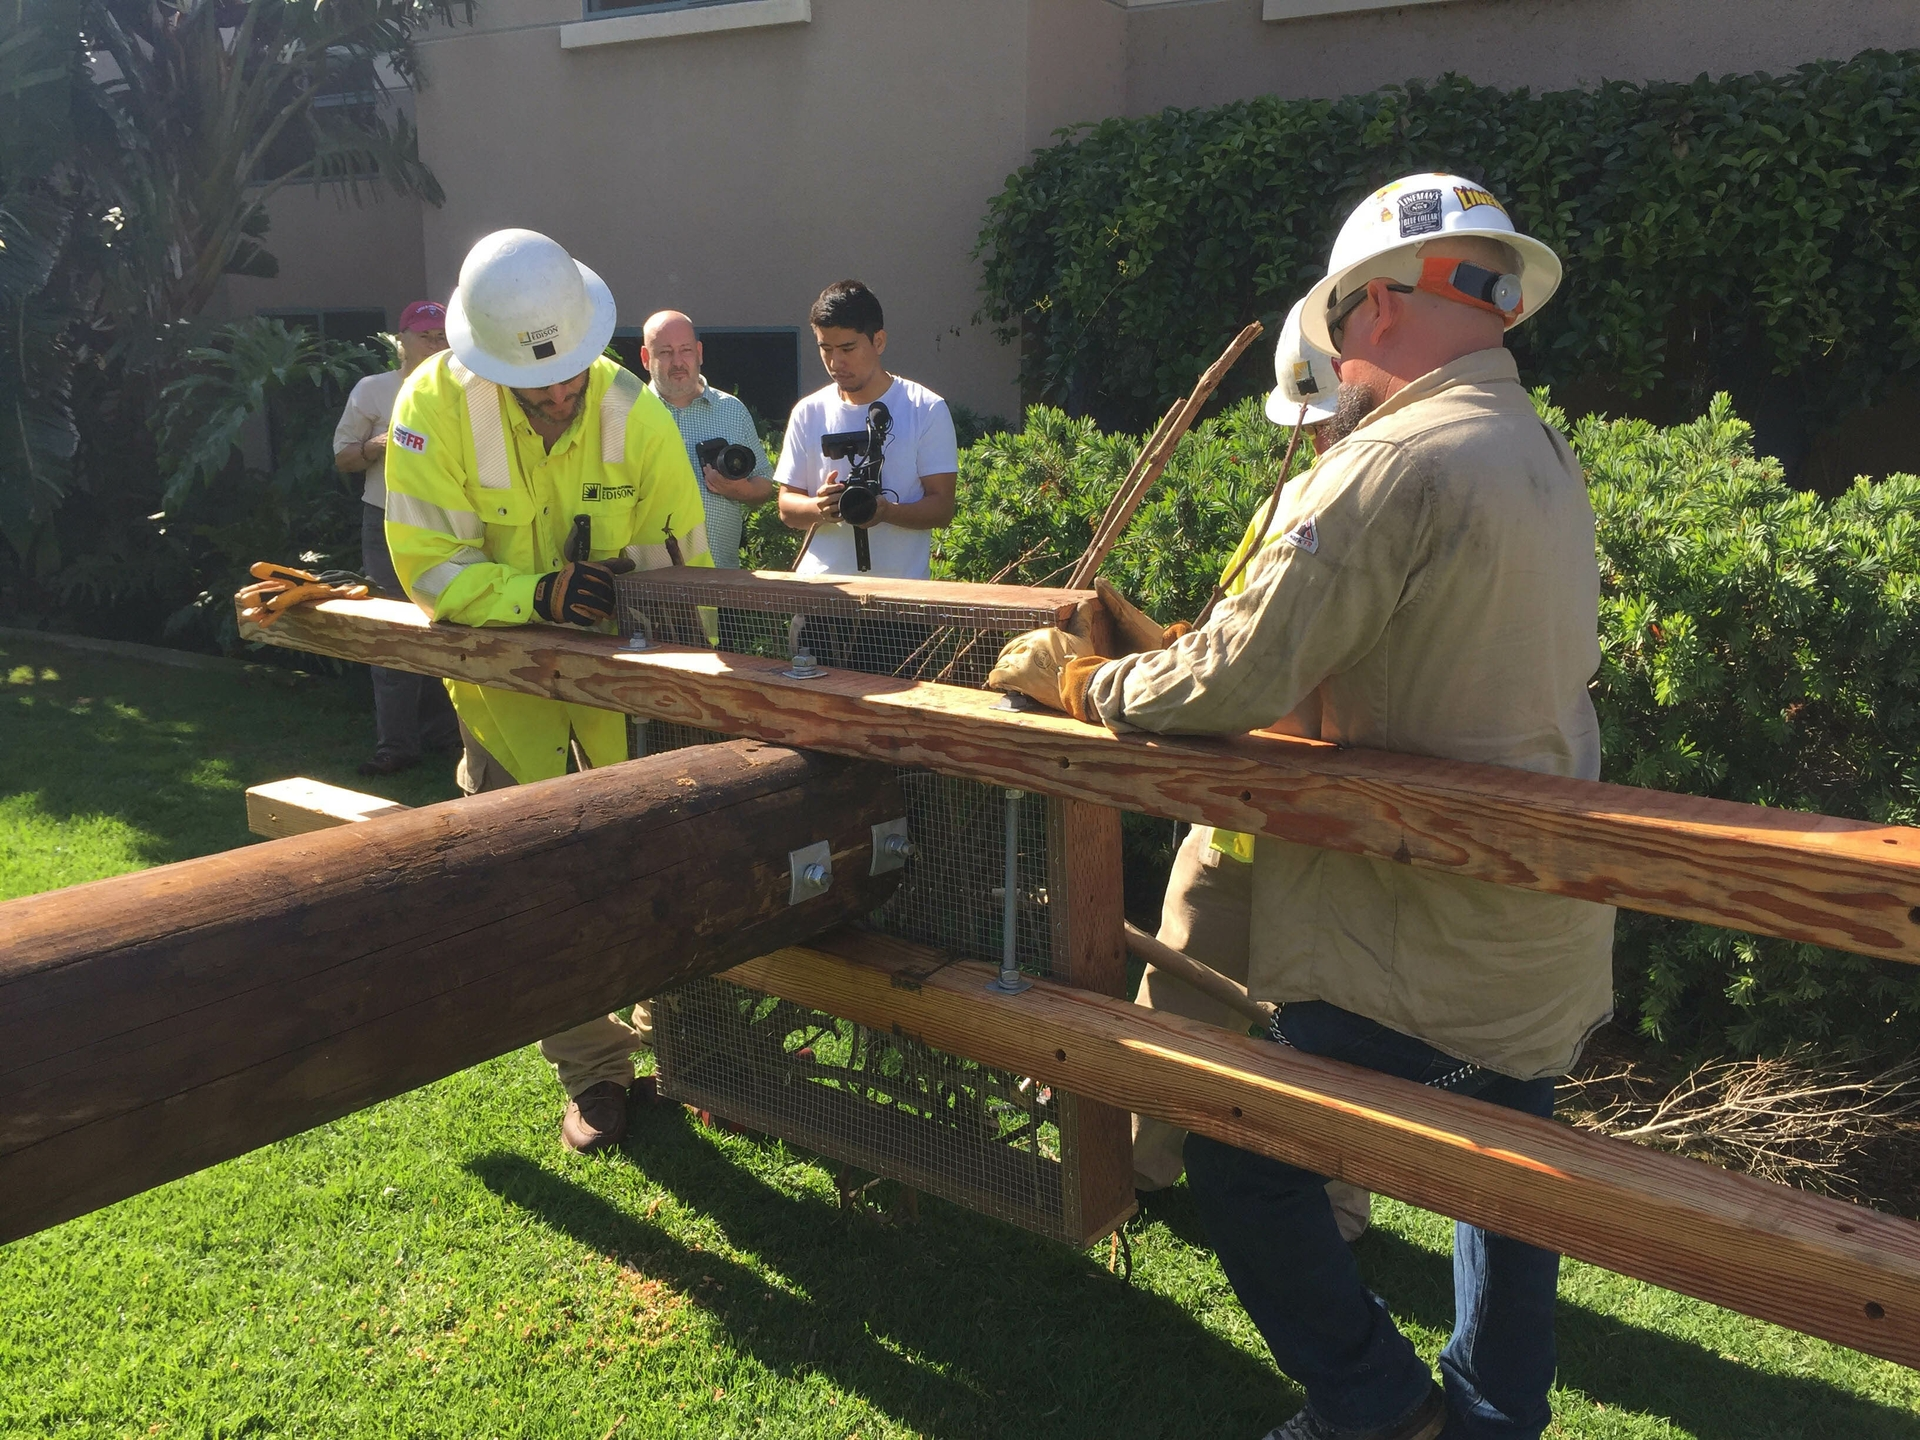 An SCE crew attaches a wood and wire osprey nesting platform to a power pole at Loyola Marymount University.